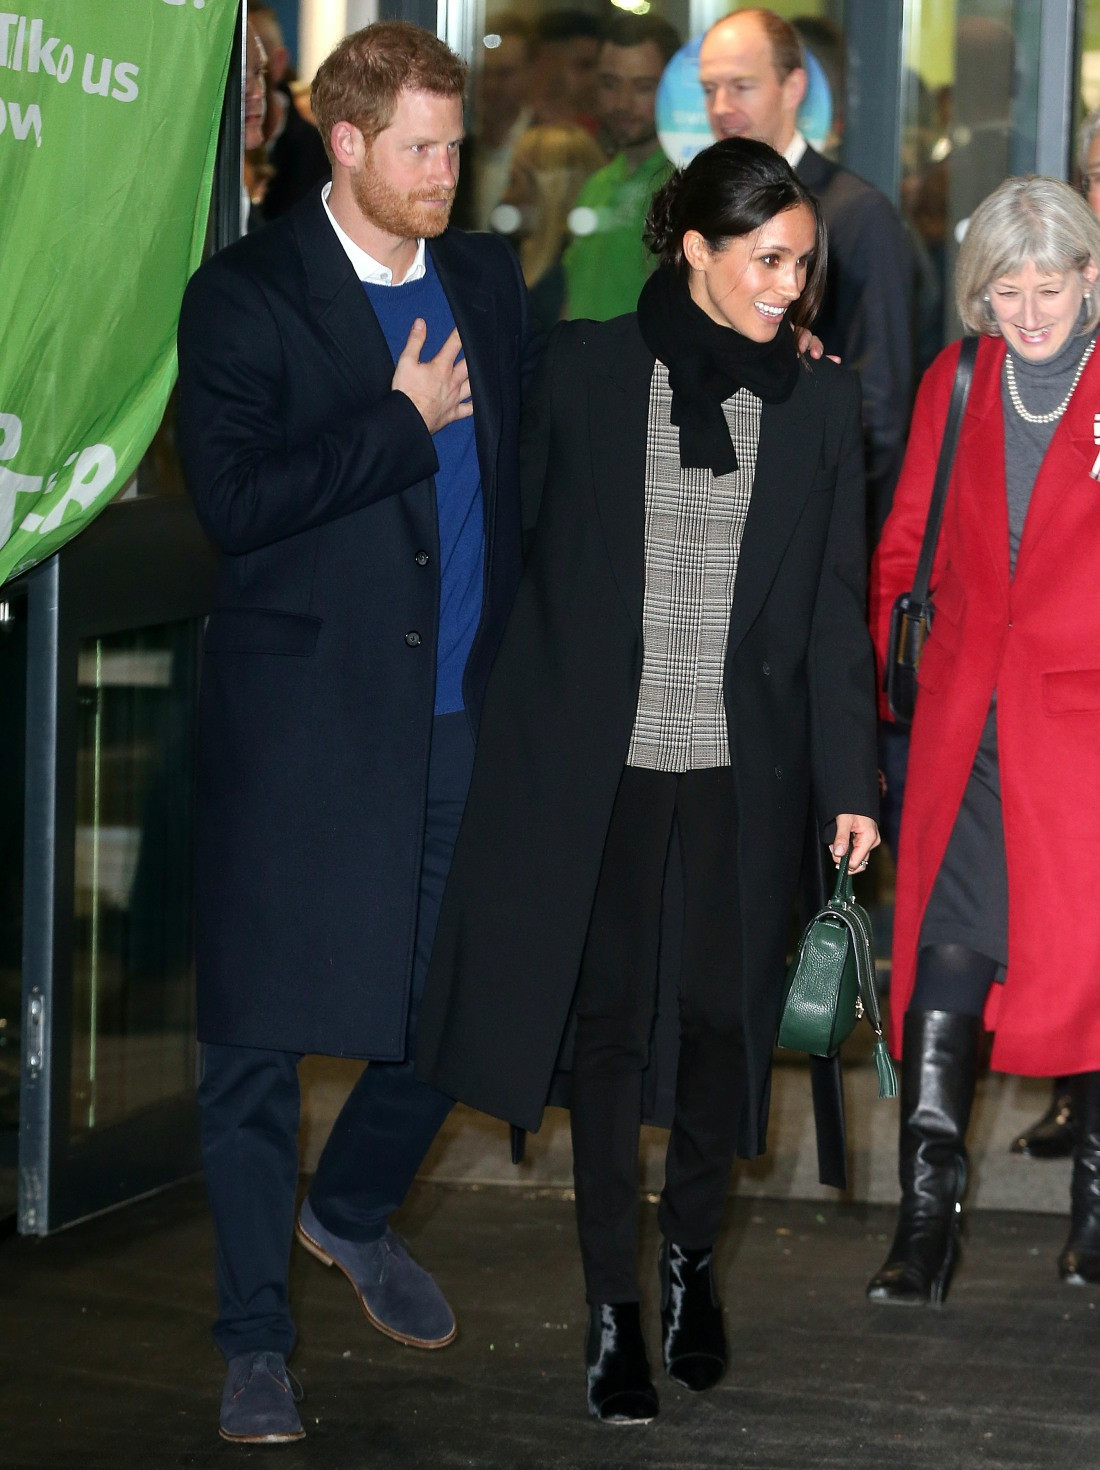 Meghan Markle and Prince Harry visit Cardiff